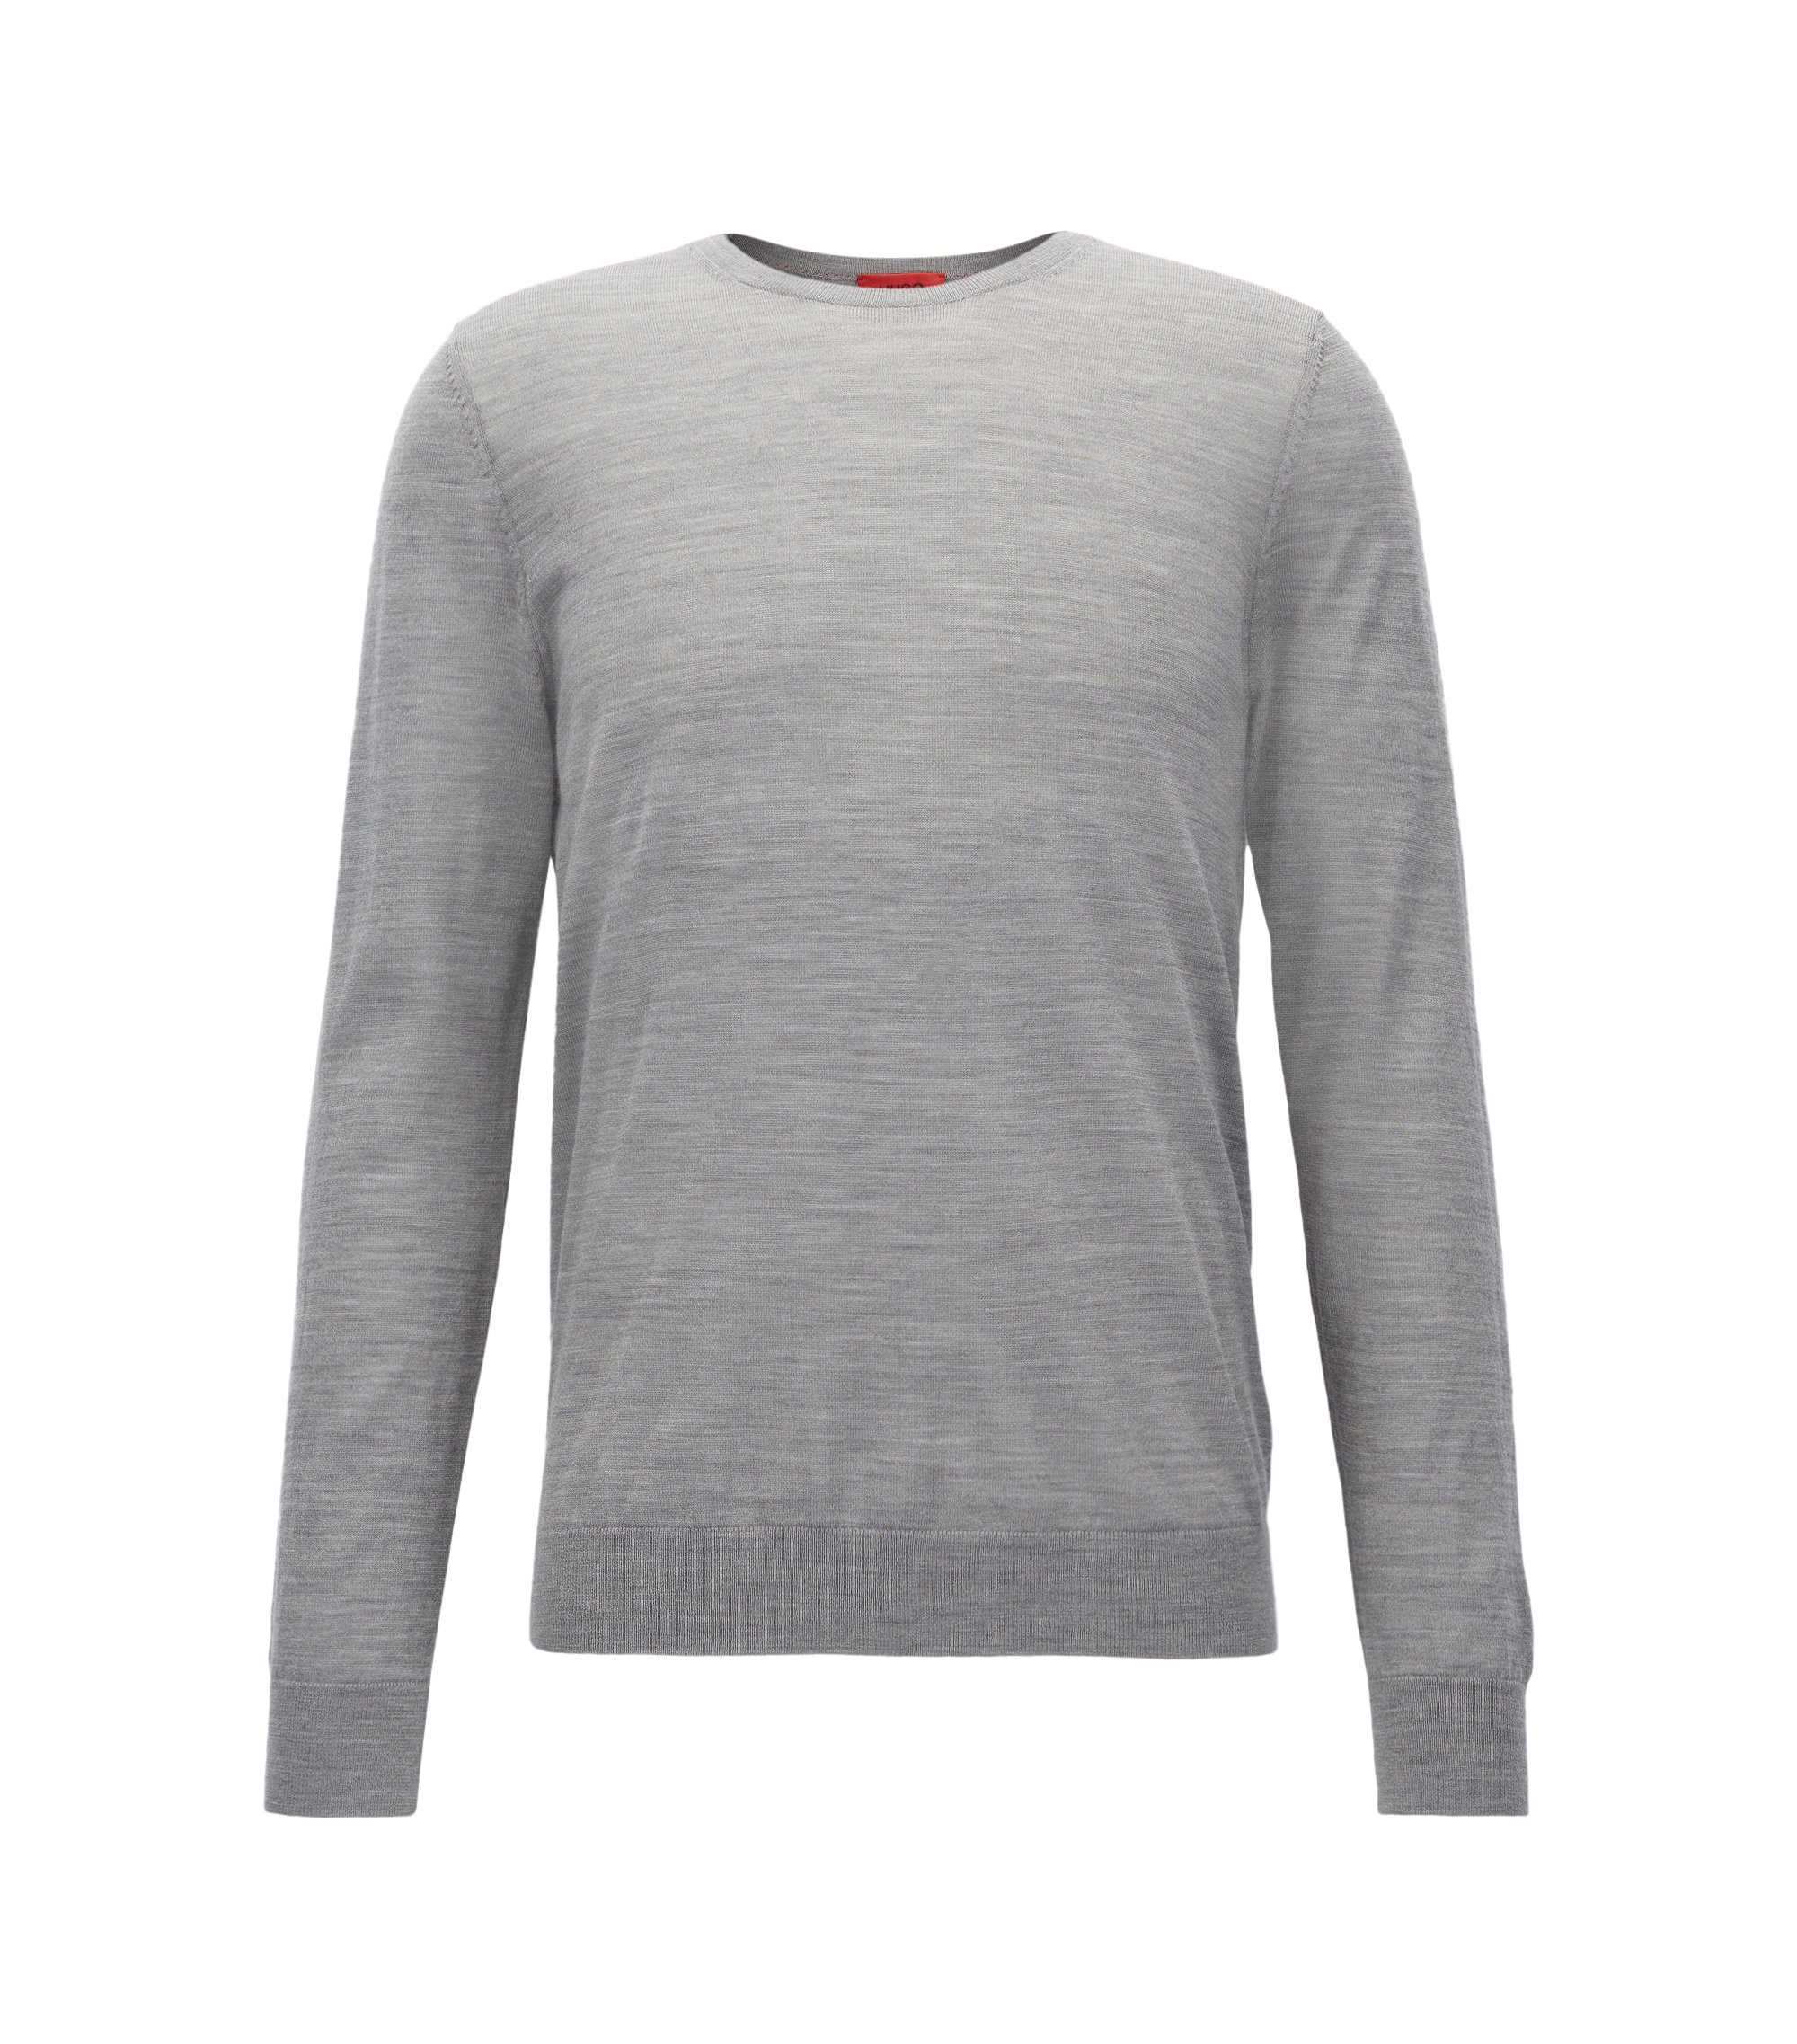 Crew-neck sweater in lightweight merino wool piqué BOSS